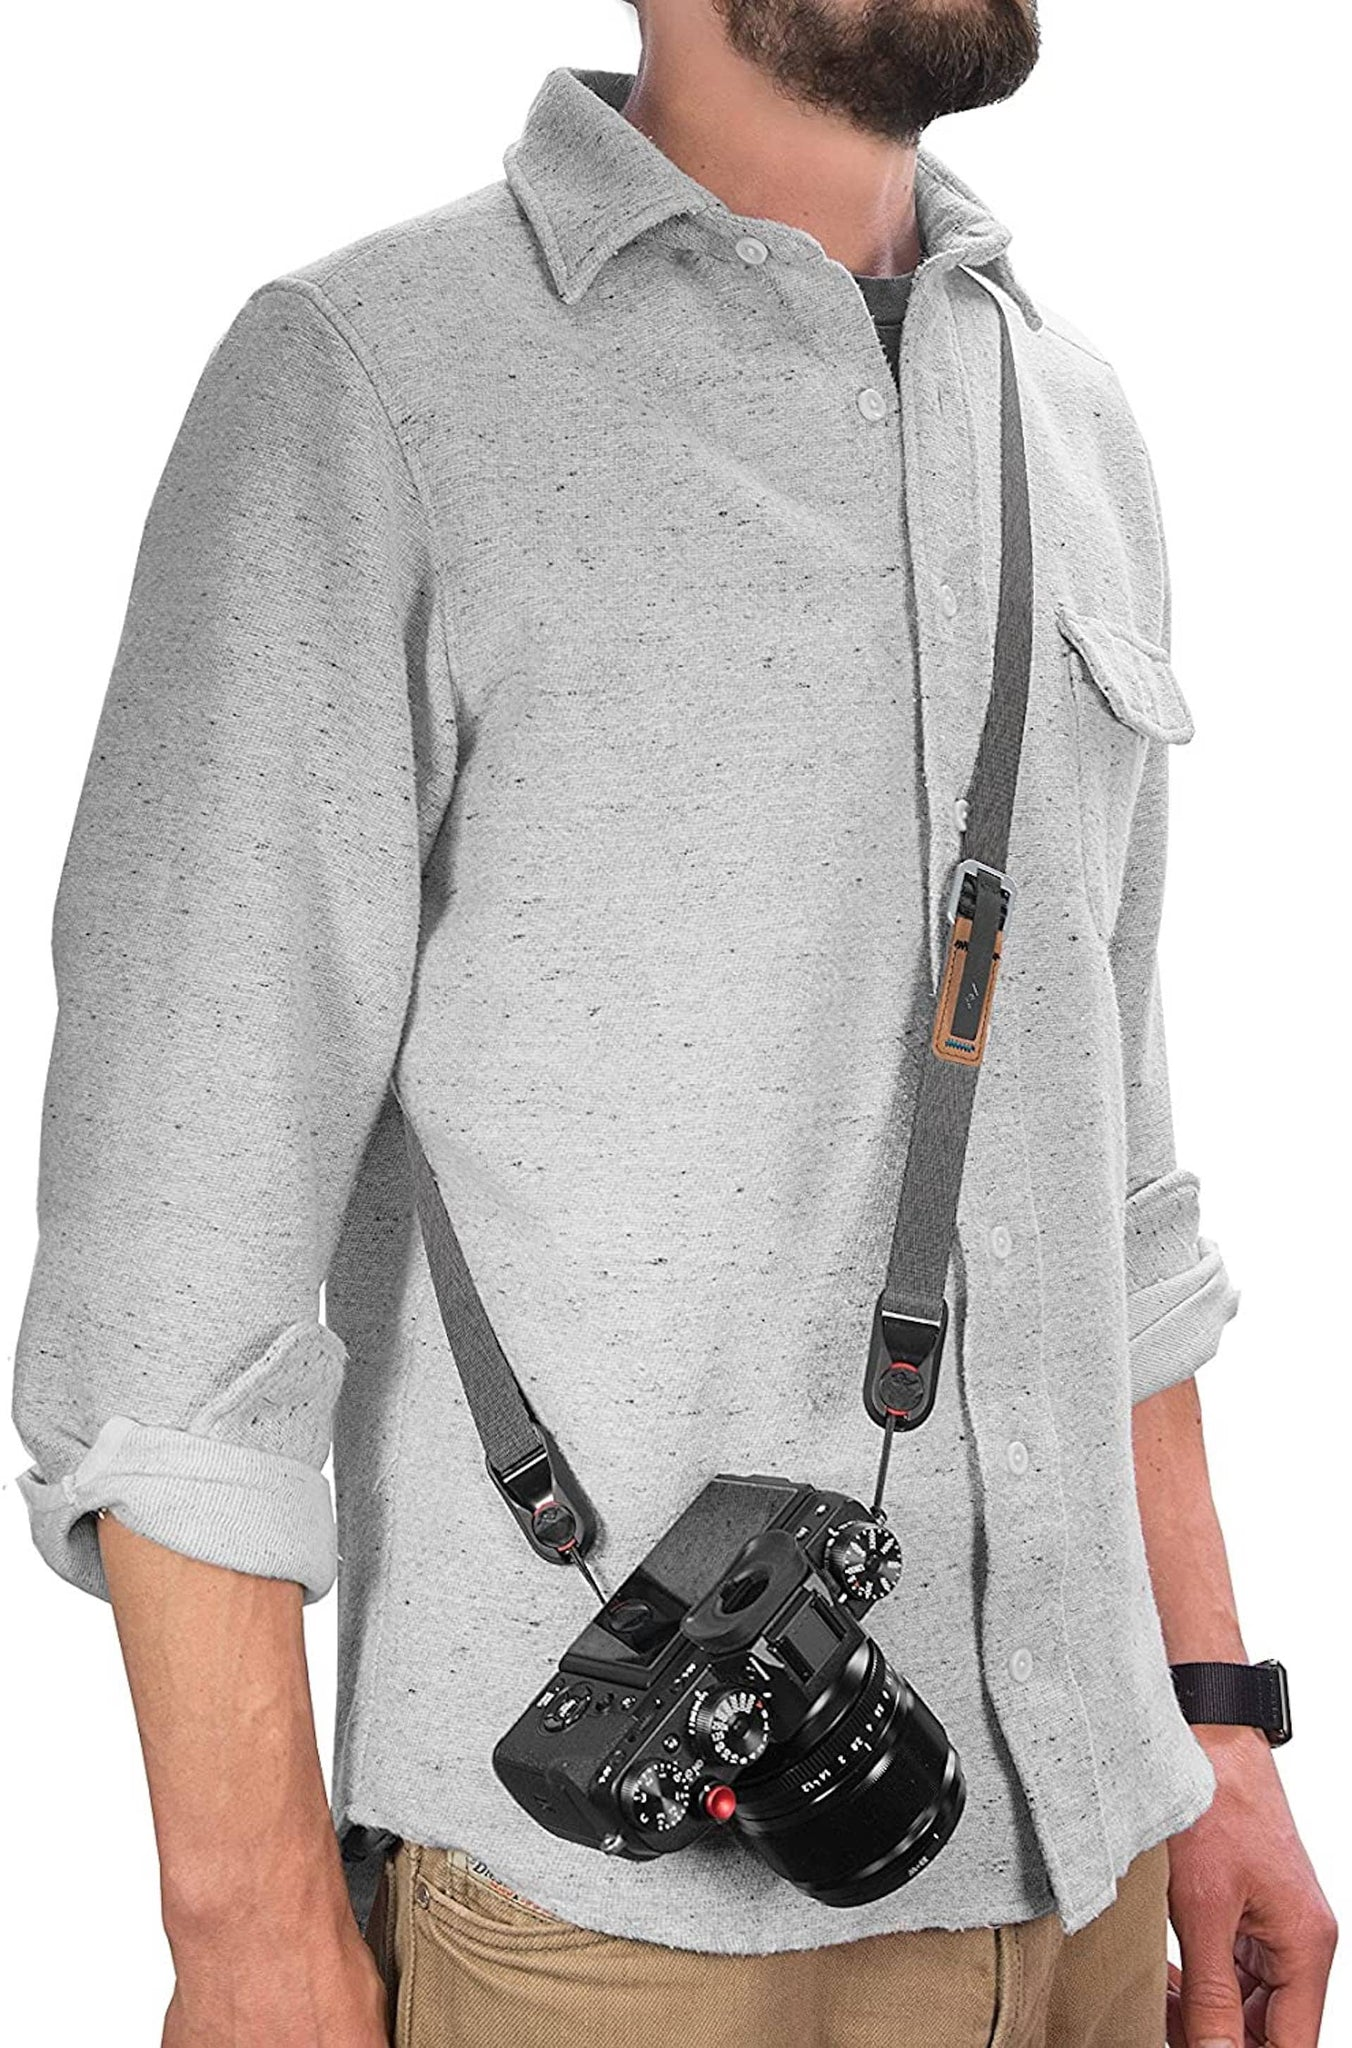 Best Photo Gifts for Photographers - Ideas Photographer Lovers - Peak Design Camera Strap